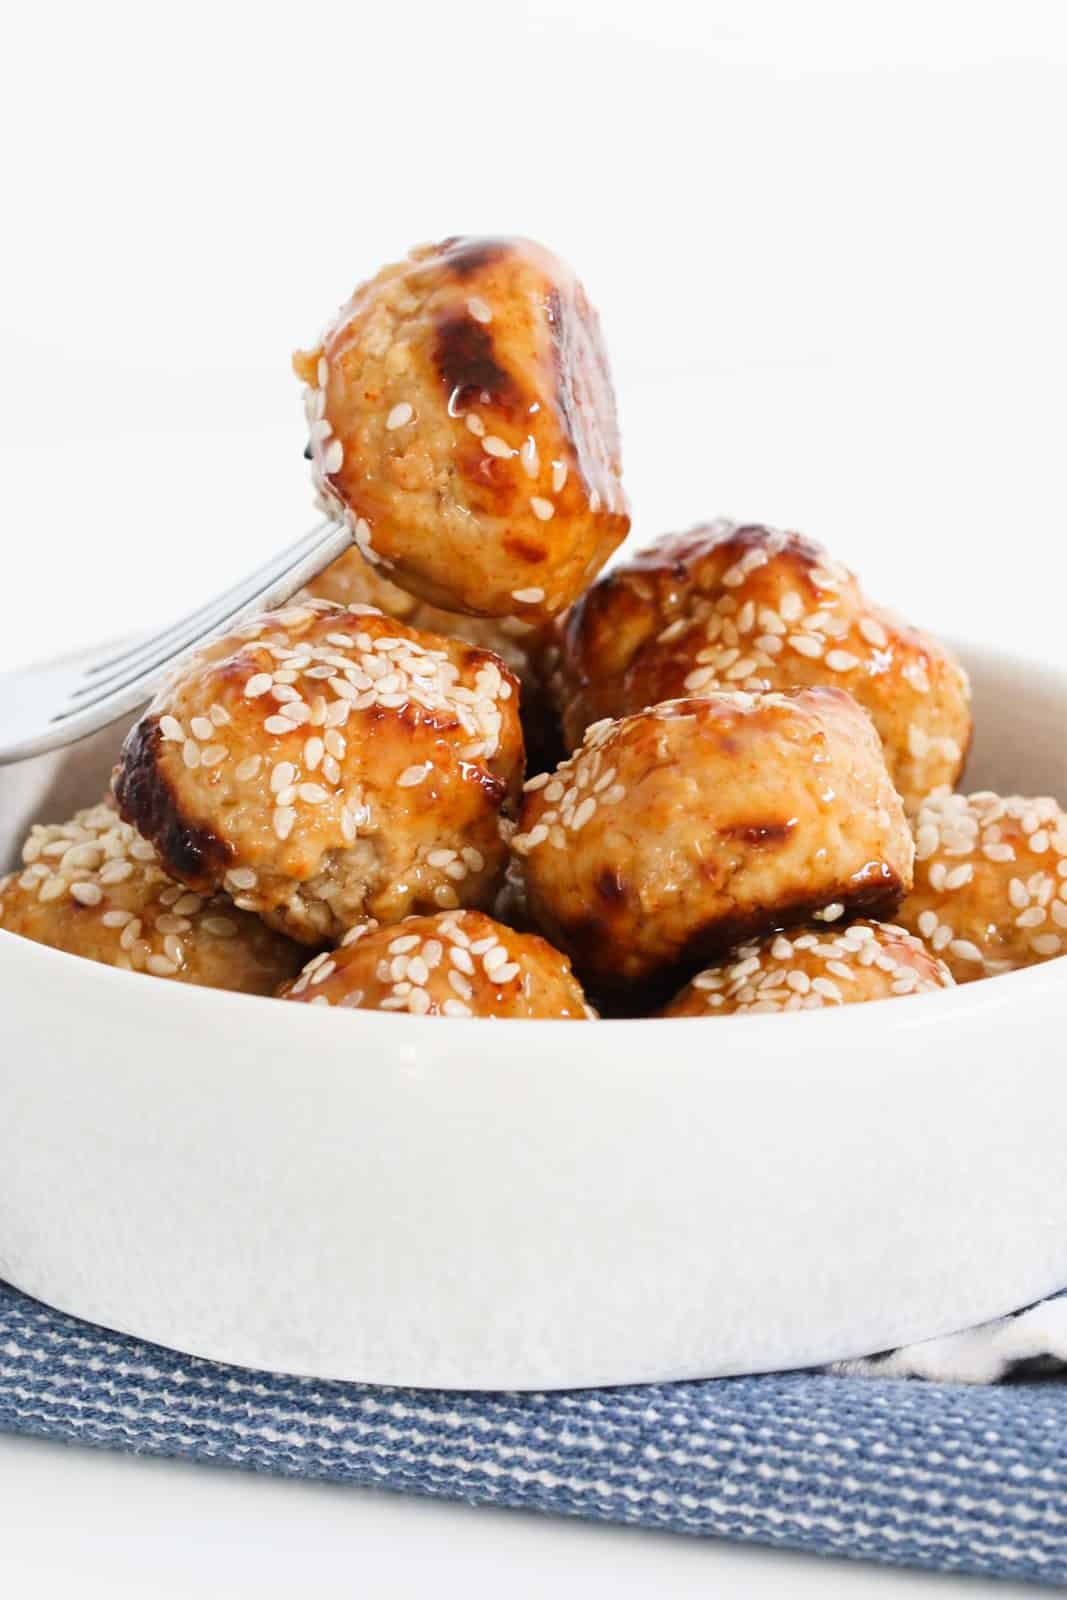 A fork picking up a chicken meatball coated in sweet chilli sauce and sesame seeds.